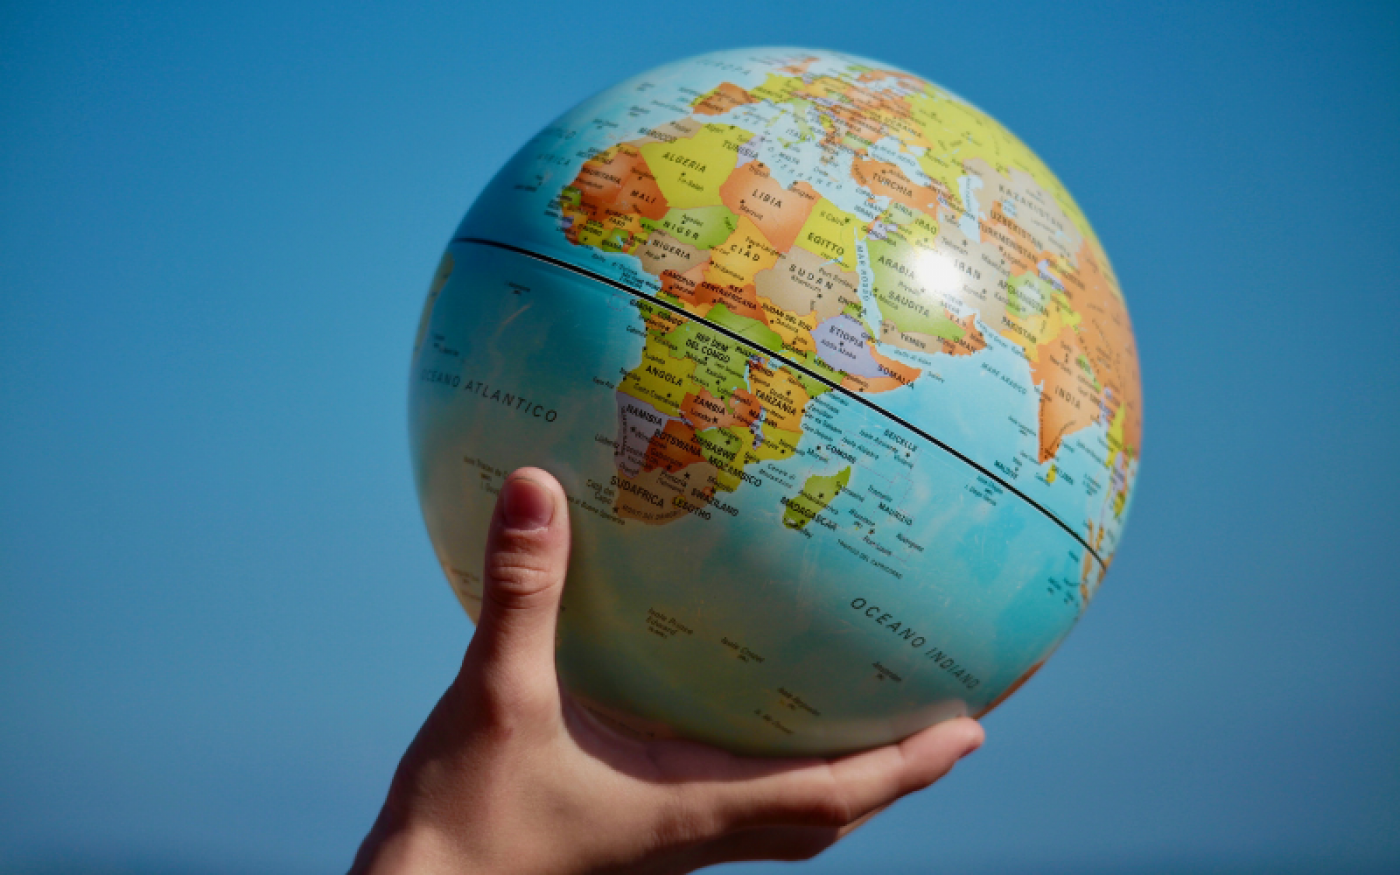 A globe in someone's hand